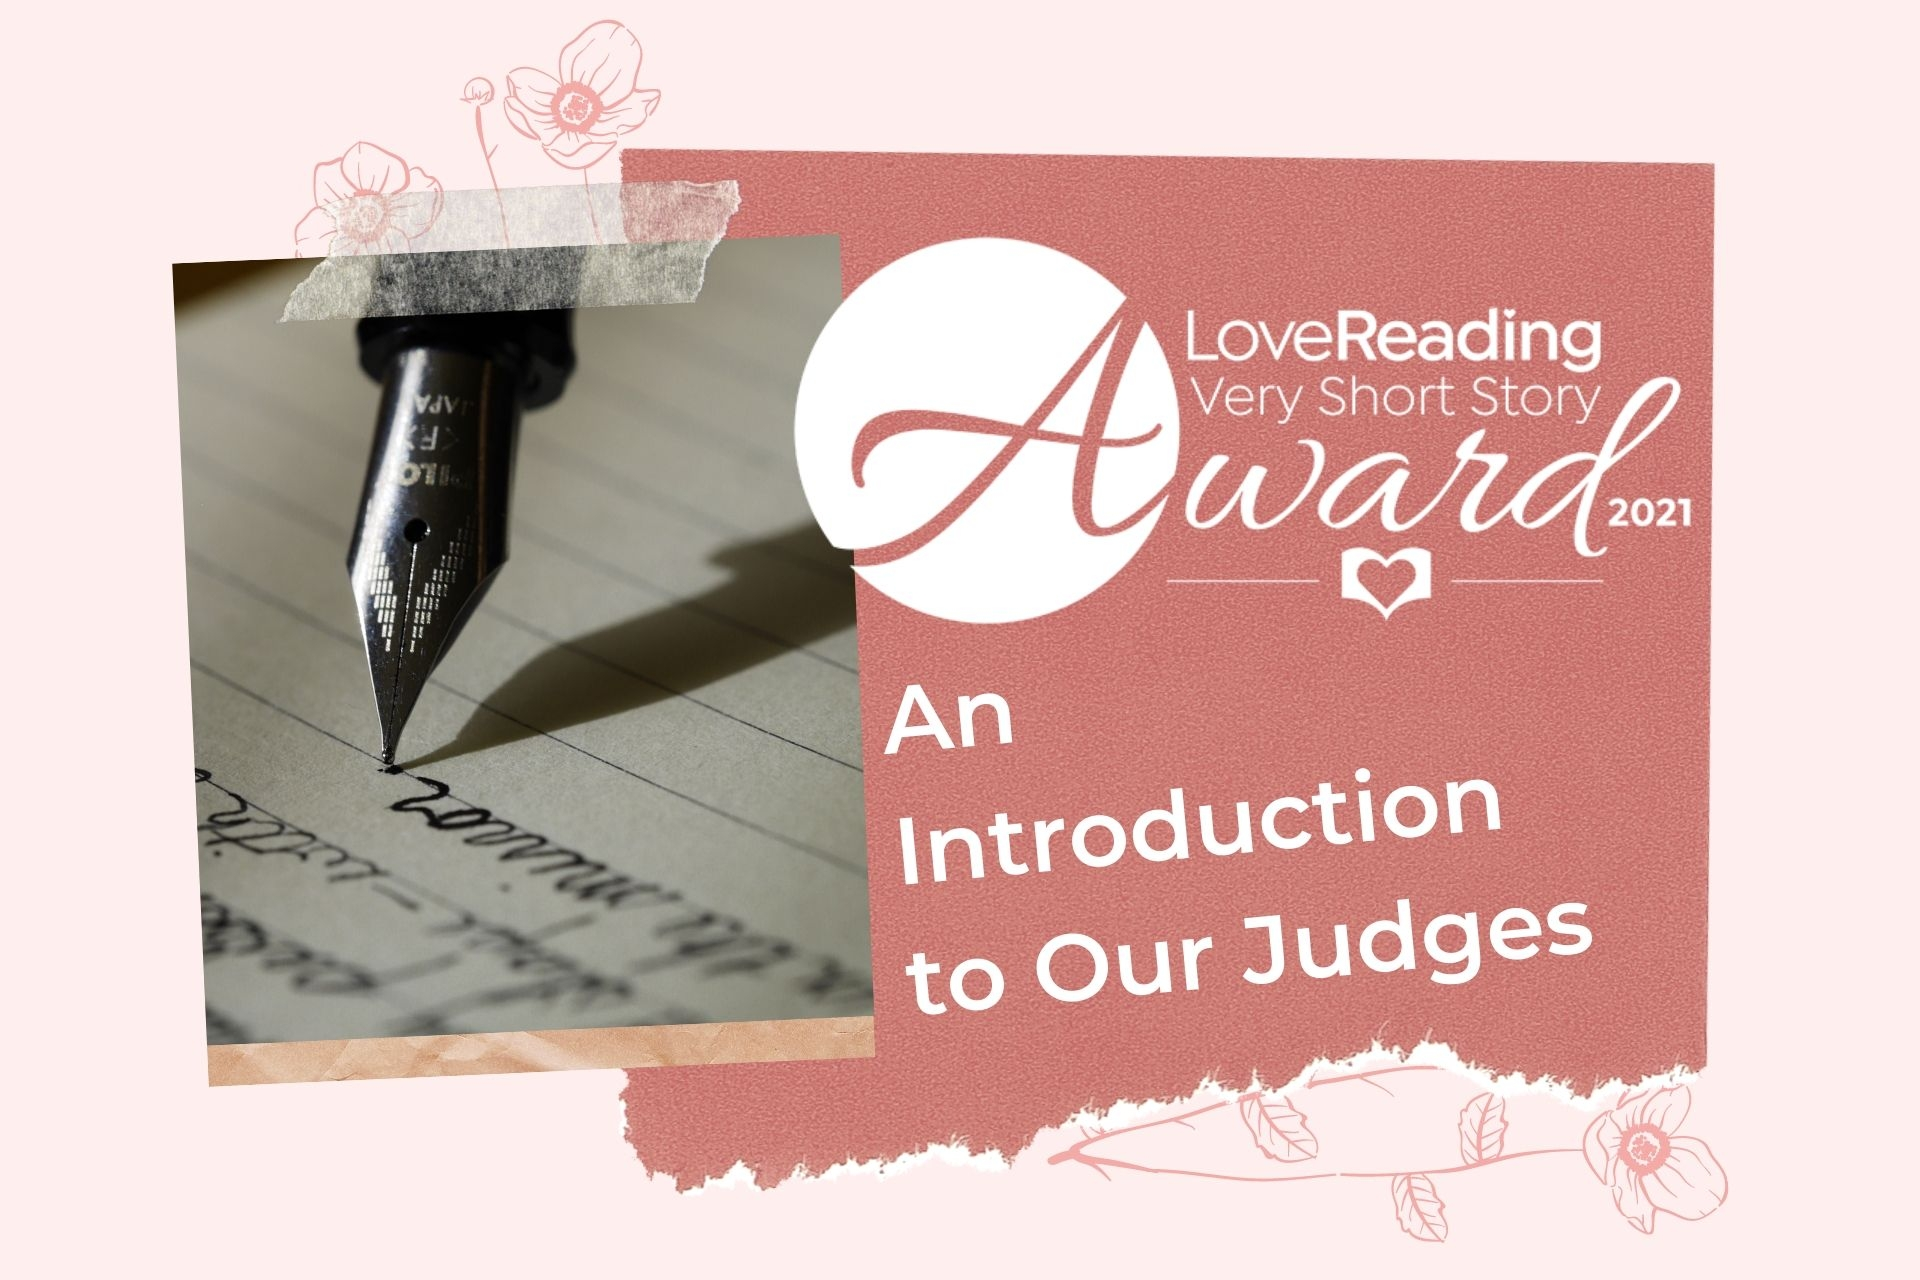 The LoveReading Very Short Story Award 2021 - an introduction to our judges.